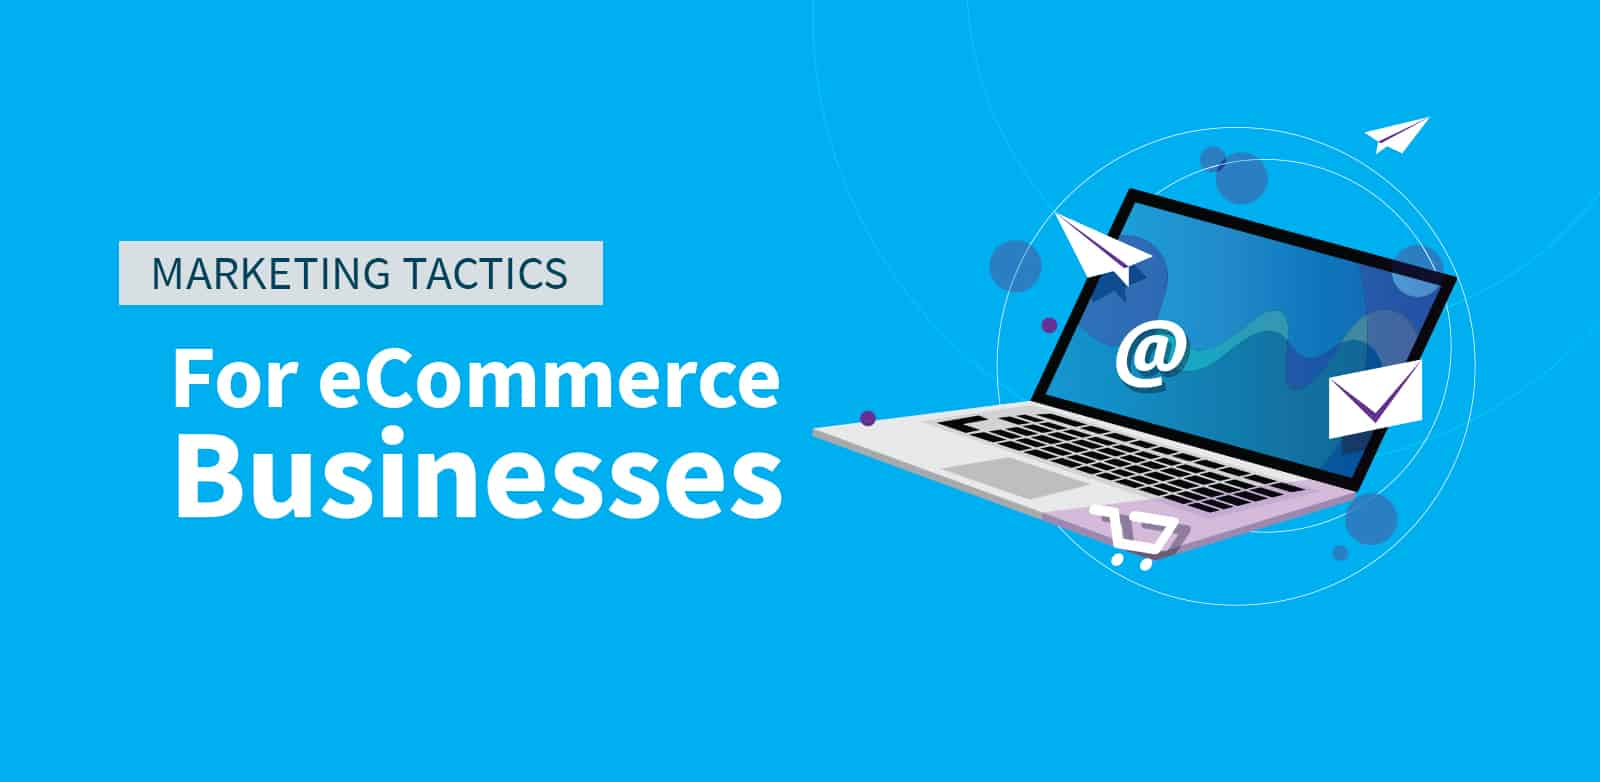 eCommerce Businesses